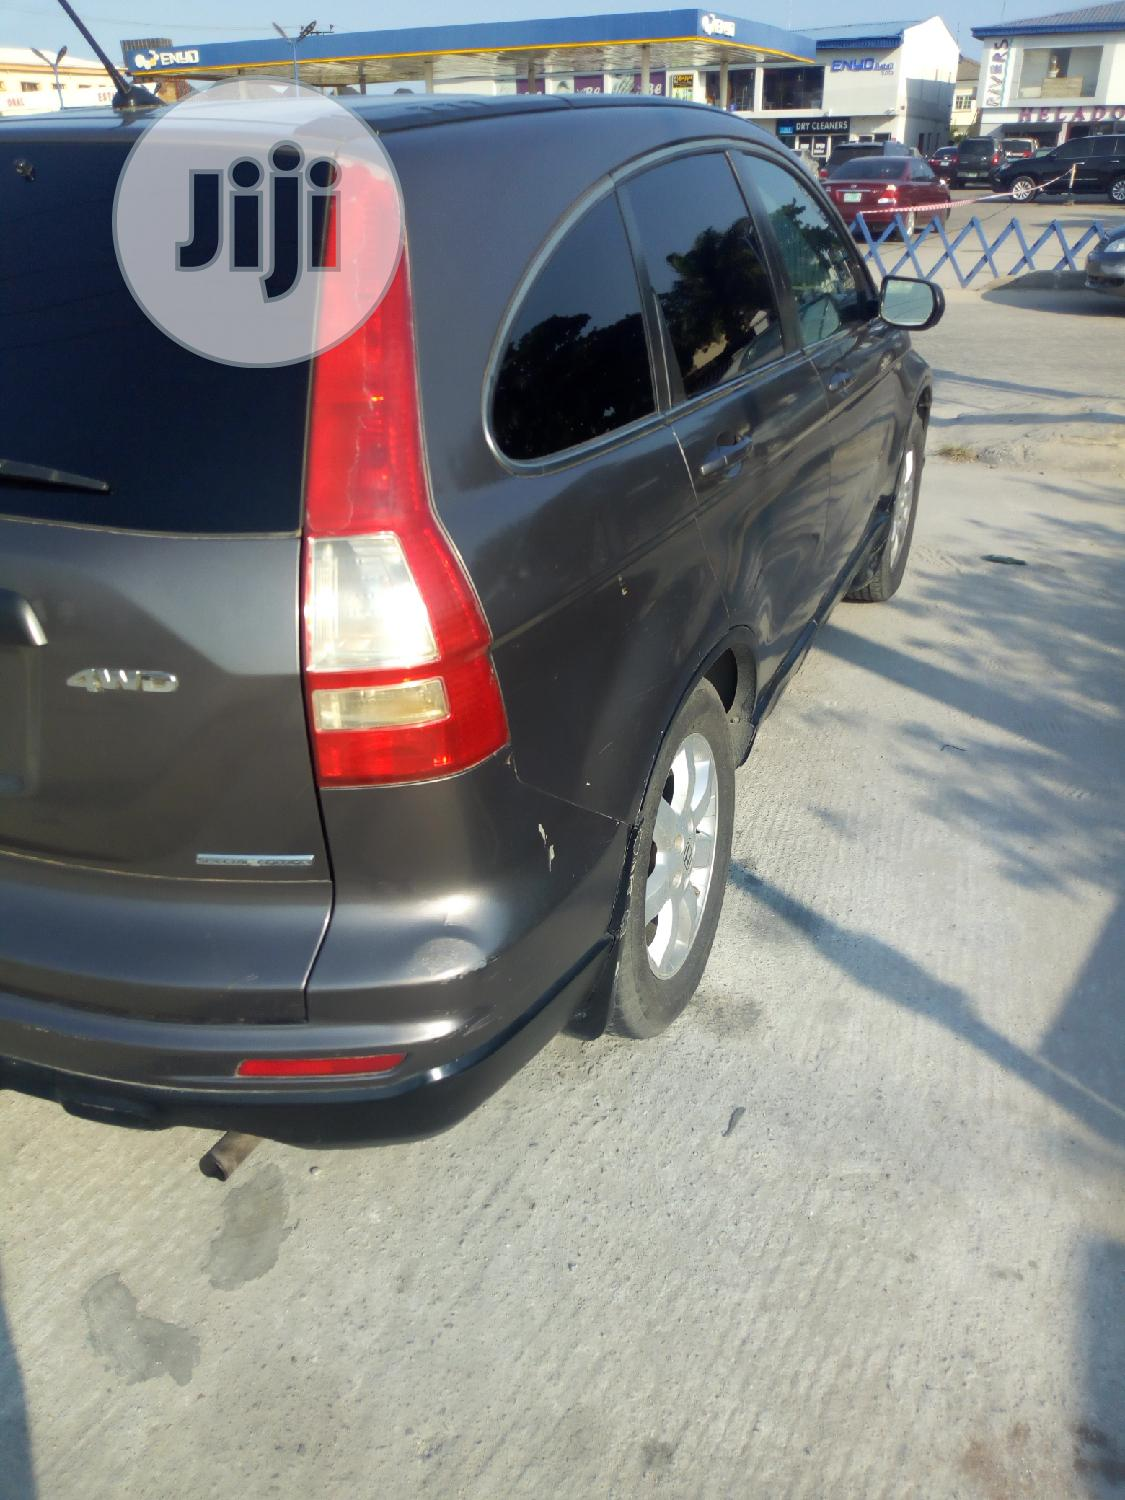 Honda CR-V EX 4dr SUV (2.4L 4cyl 5A) 2011 Gray | Cars for sale in Ajah, Lagos State, Nigeria